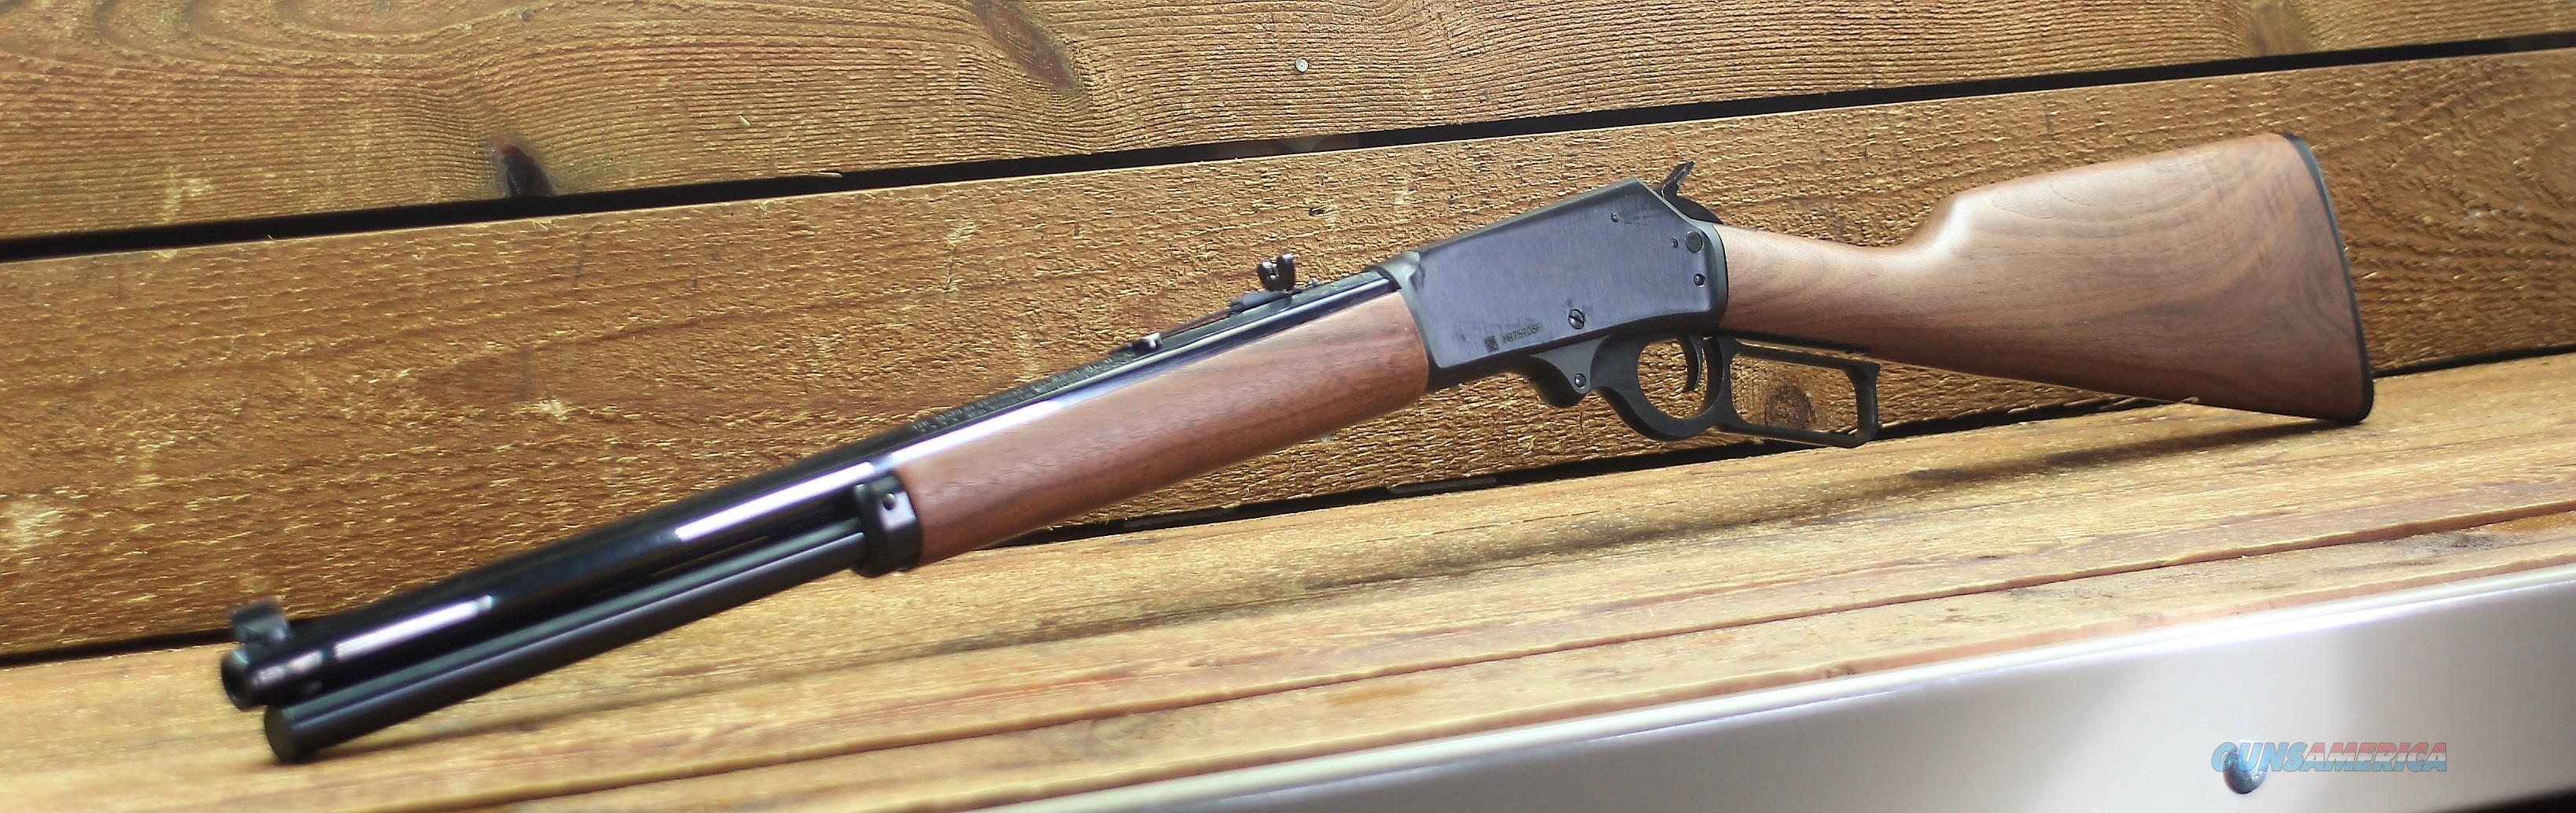 $44EASY PAY Proud of the American Design Marlin model 1895 Cowboy Lever  Action Walnut Stock Wood B